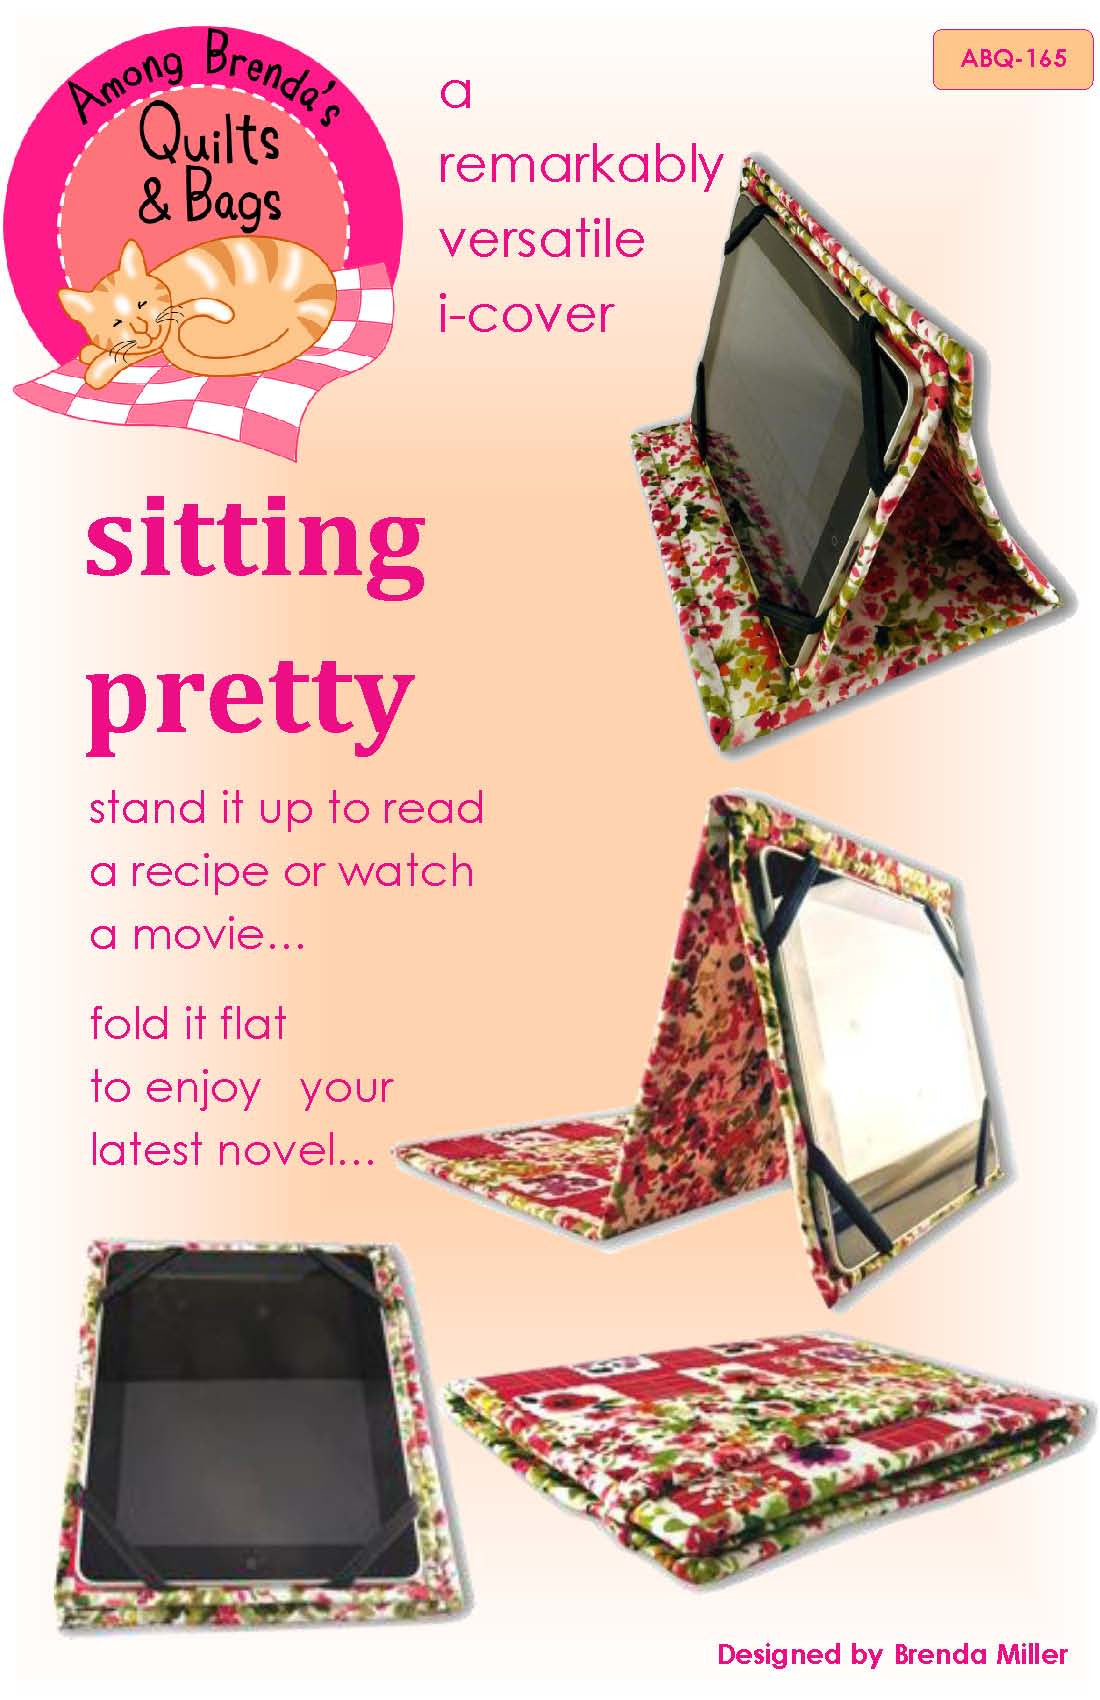 Pattern, Sitting Pretty, an i-cover stand and reader